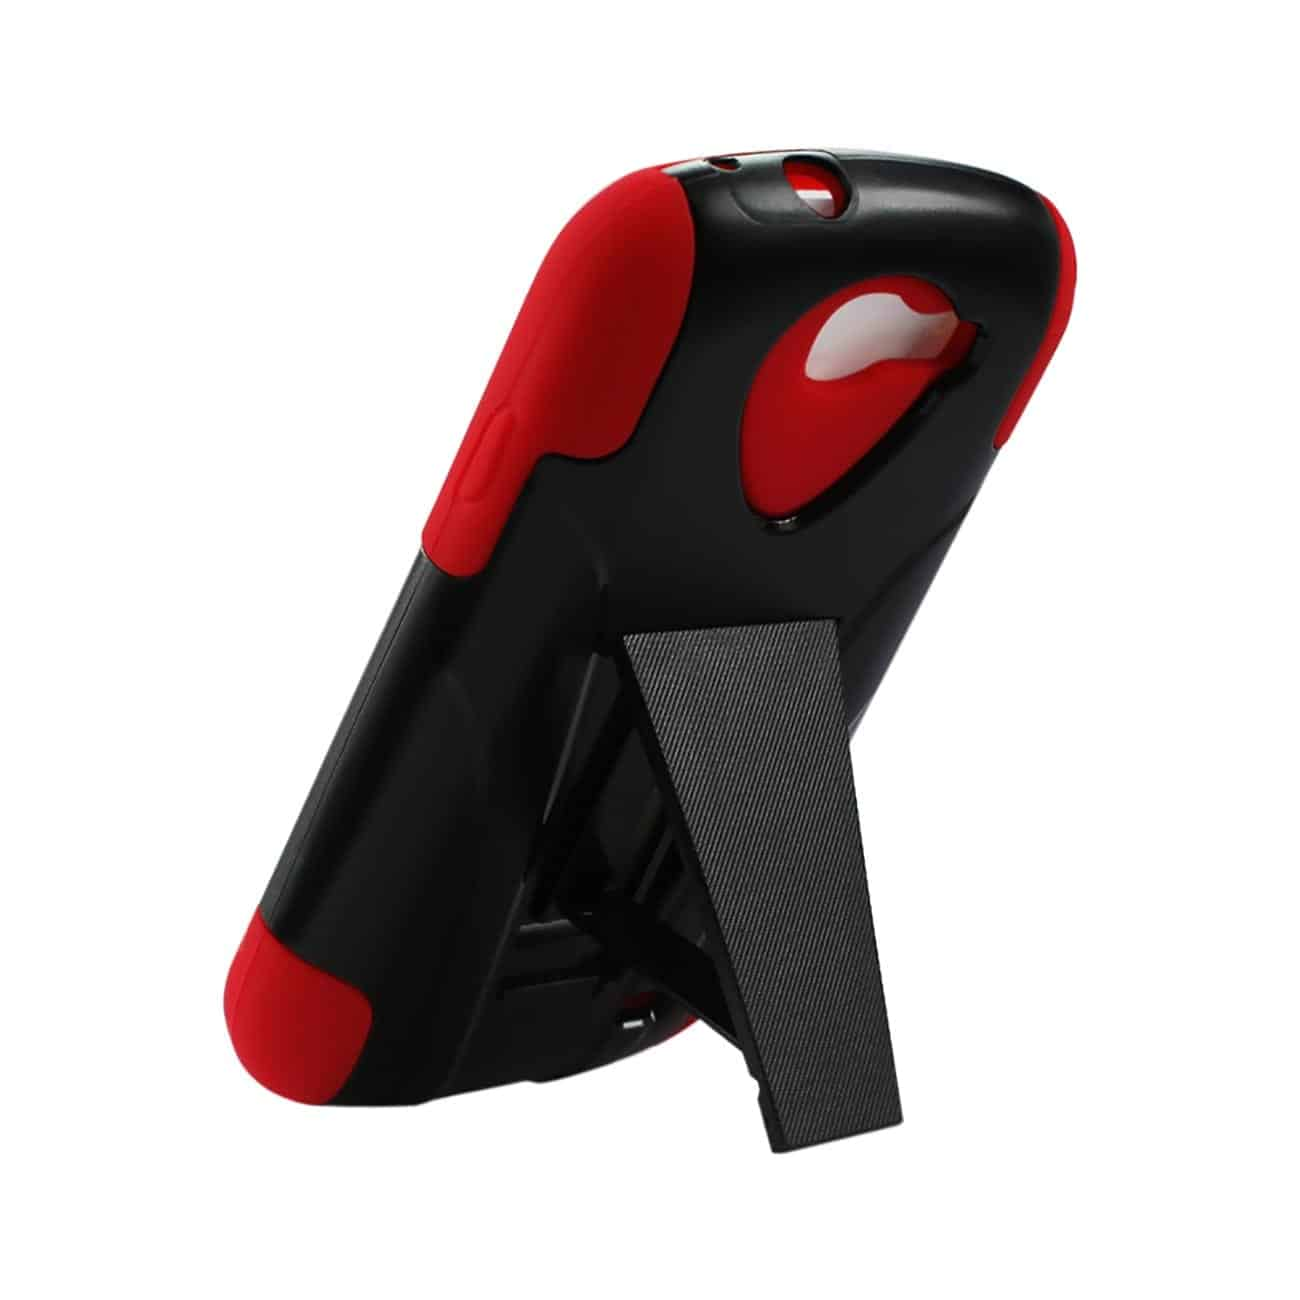 SAMSUNG GALAXY EXPRESS HYBRID HEAVY DUTY CASE WITH KICKSTAND IN RED BLACK